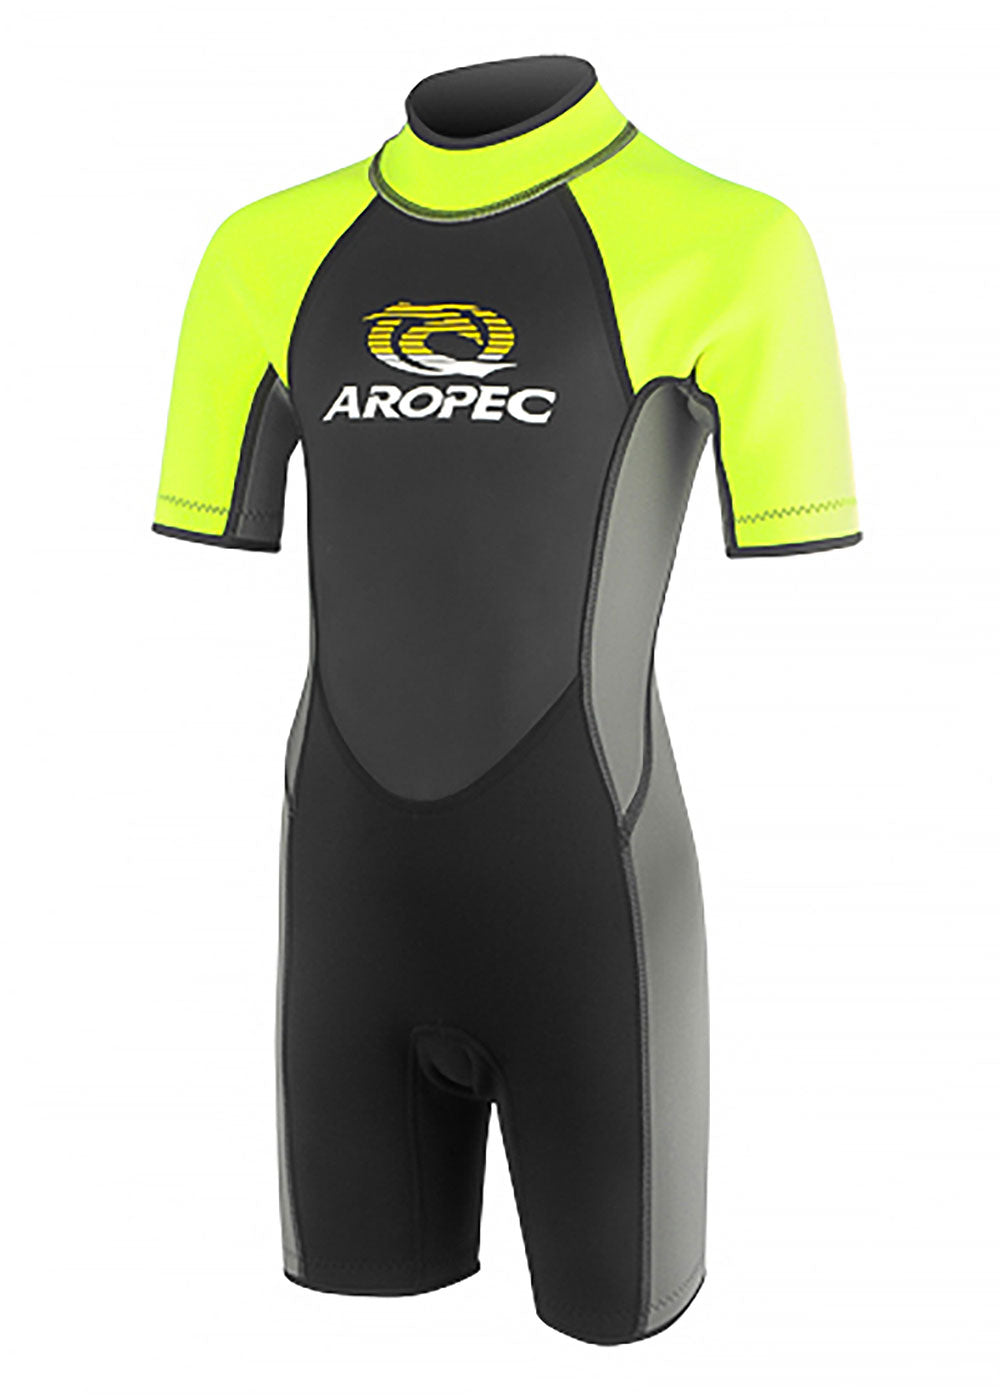 Aropec Youth 2.5mm Neon Yellow Spring Suit Wetsuit Warehouse